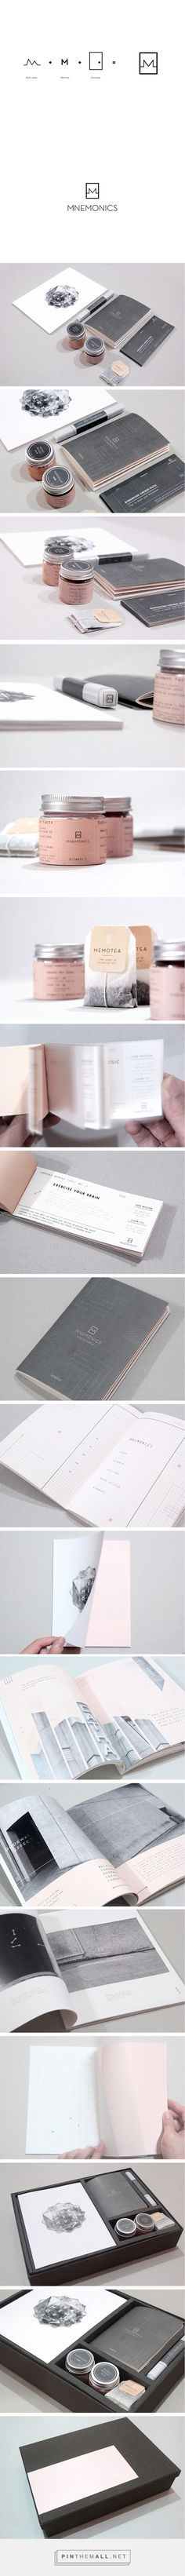 MNEMONICS | BRANDING on Behance by Andy Lim curated by Packaging Diva PD. Branding packaging editorial design print design for an application to aid information retention.